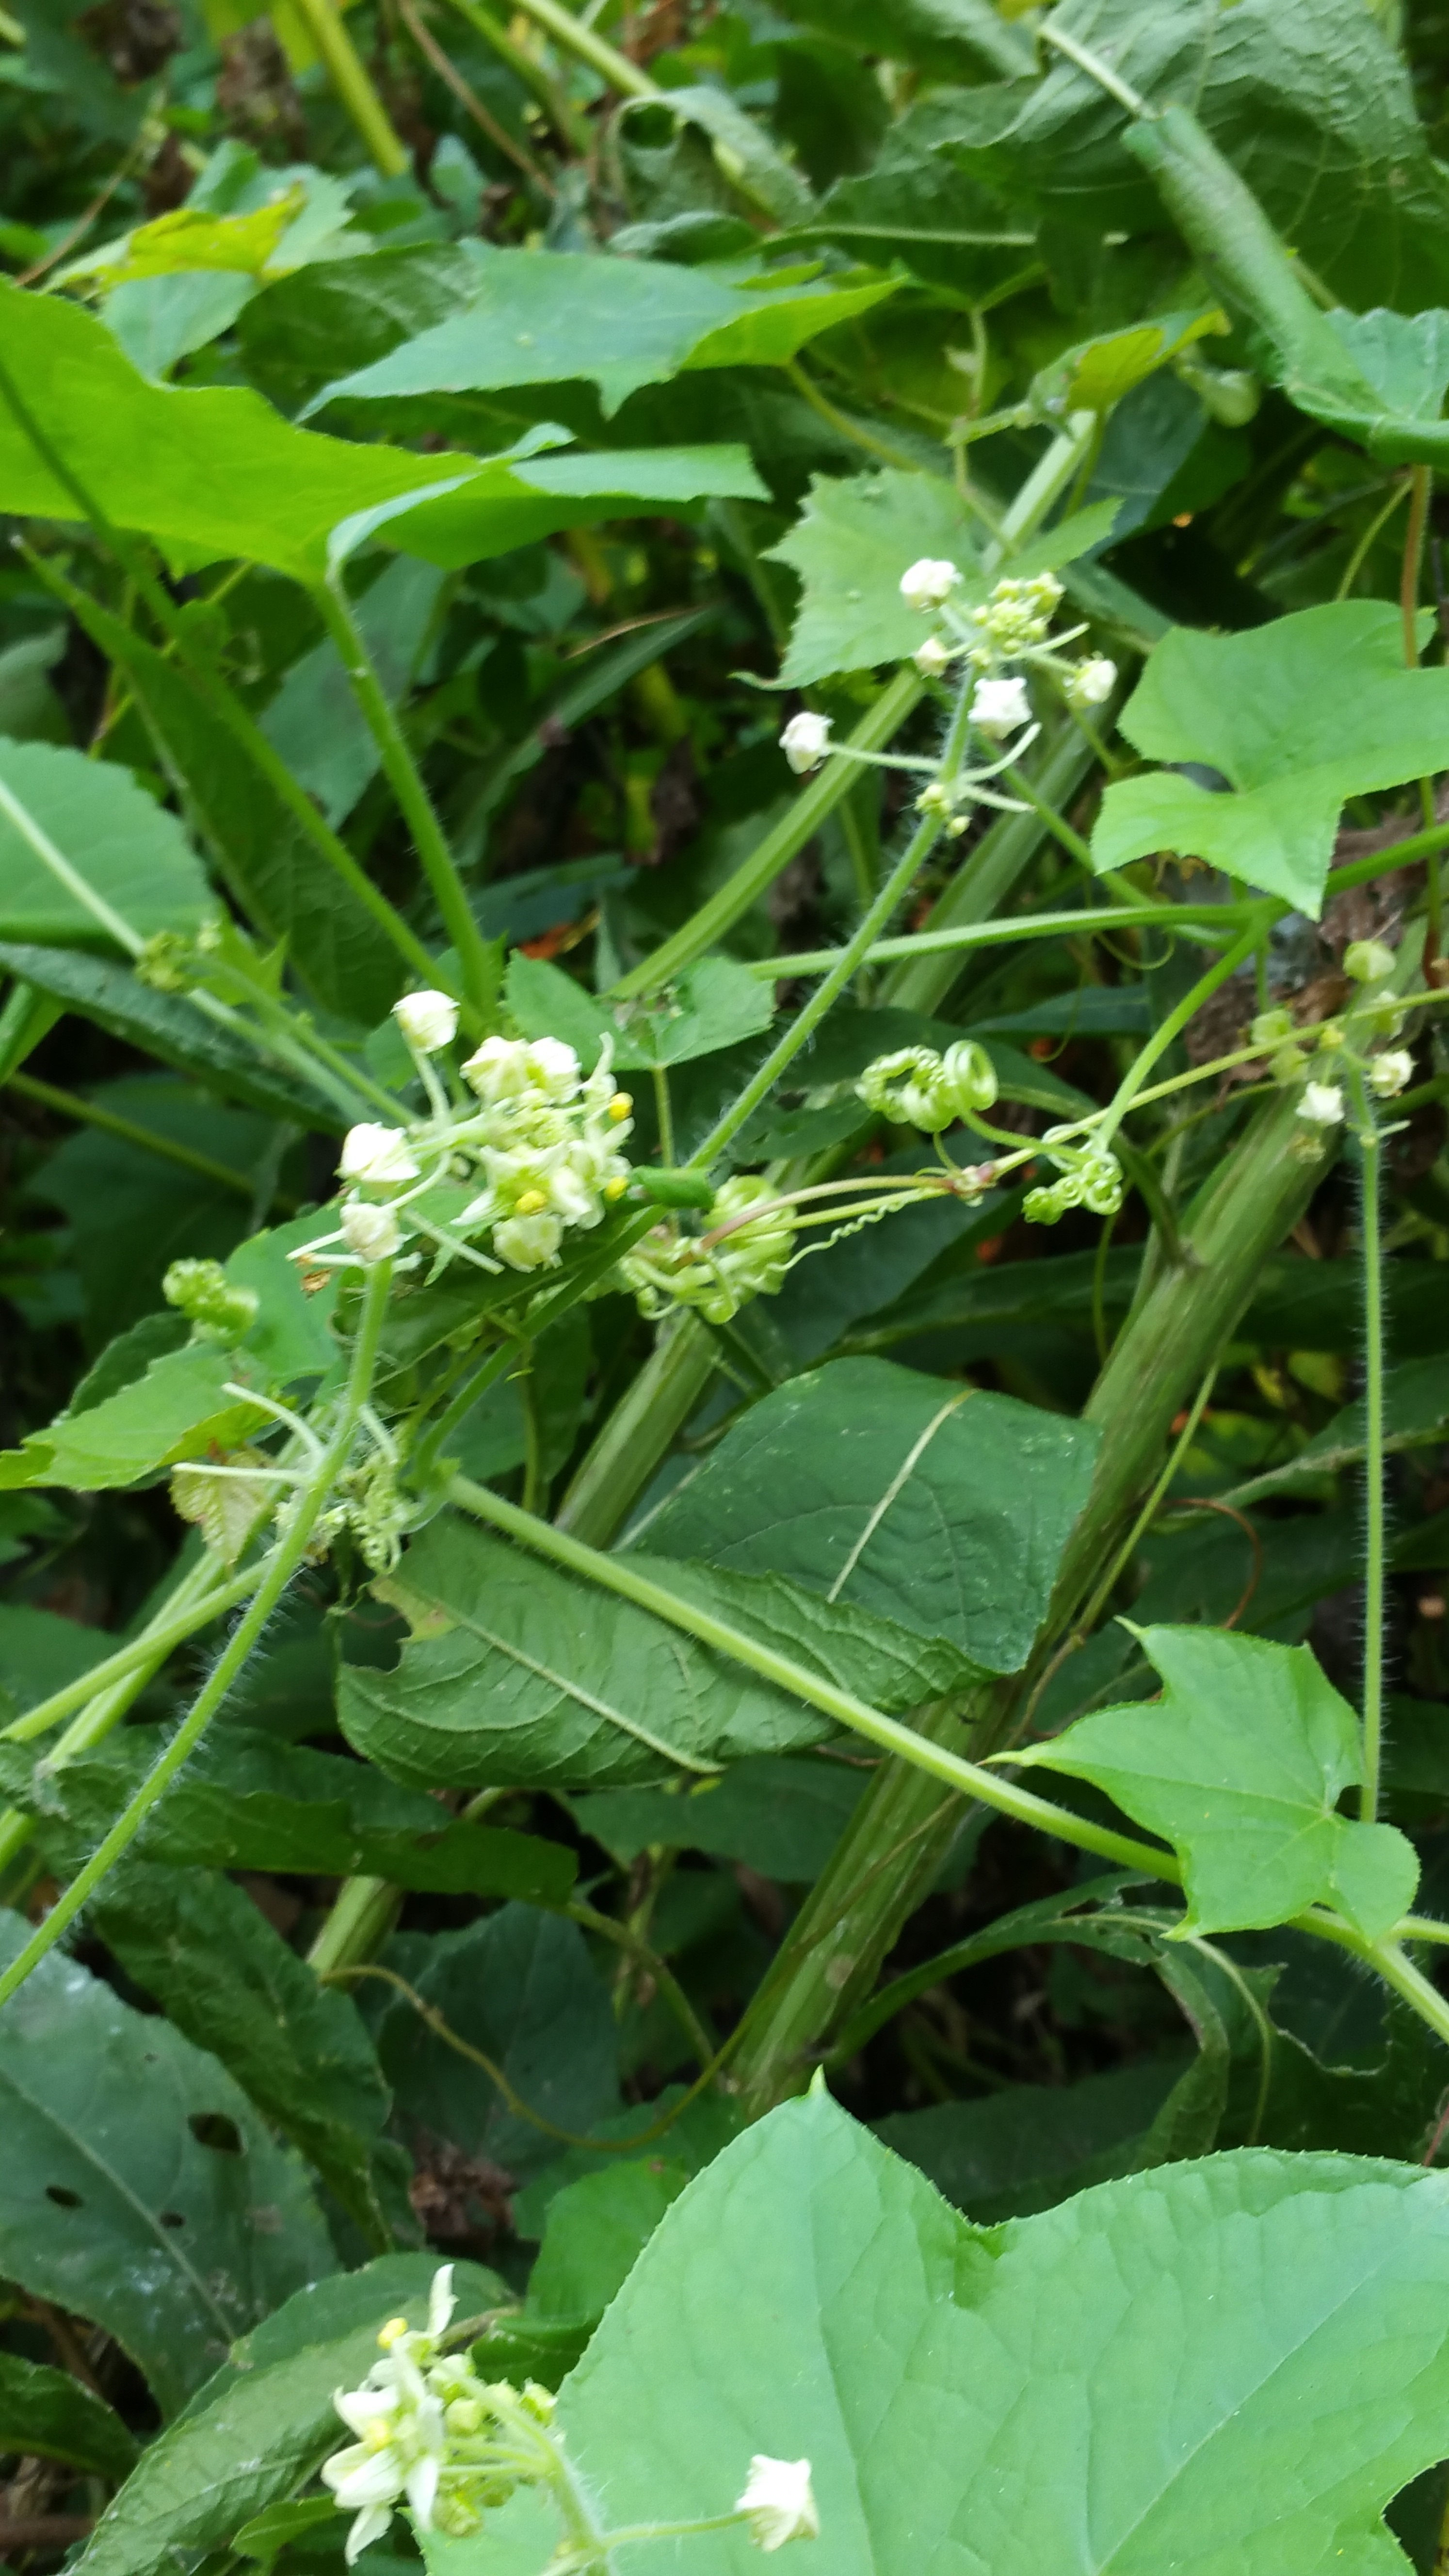 Possesses Small White Flowers That Form A Green Fleshy Fruit Eventually Ripens To Purple Containing Crescent Shaped Seed